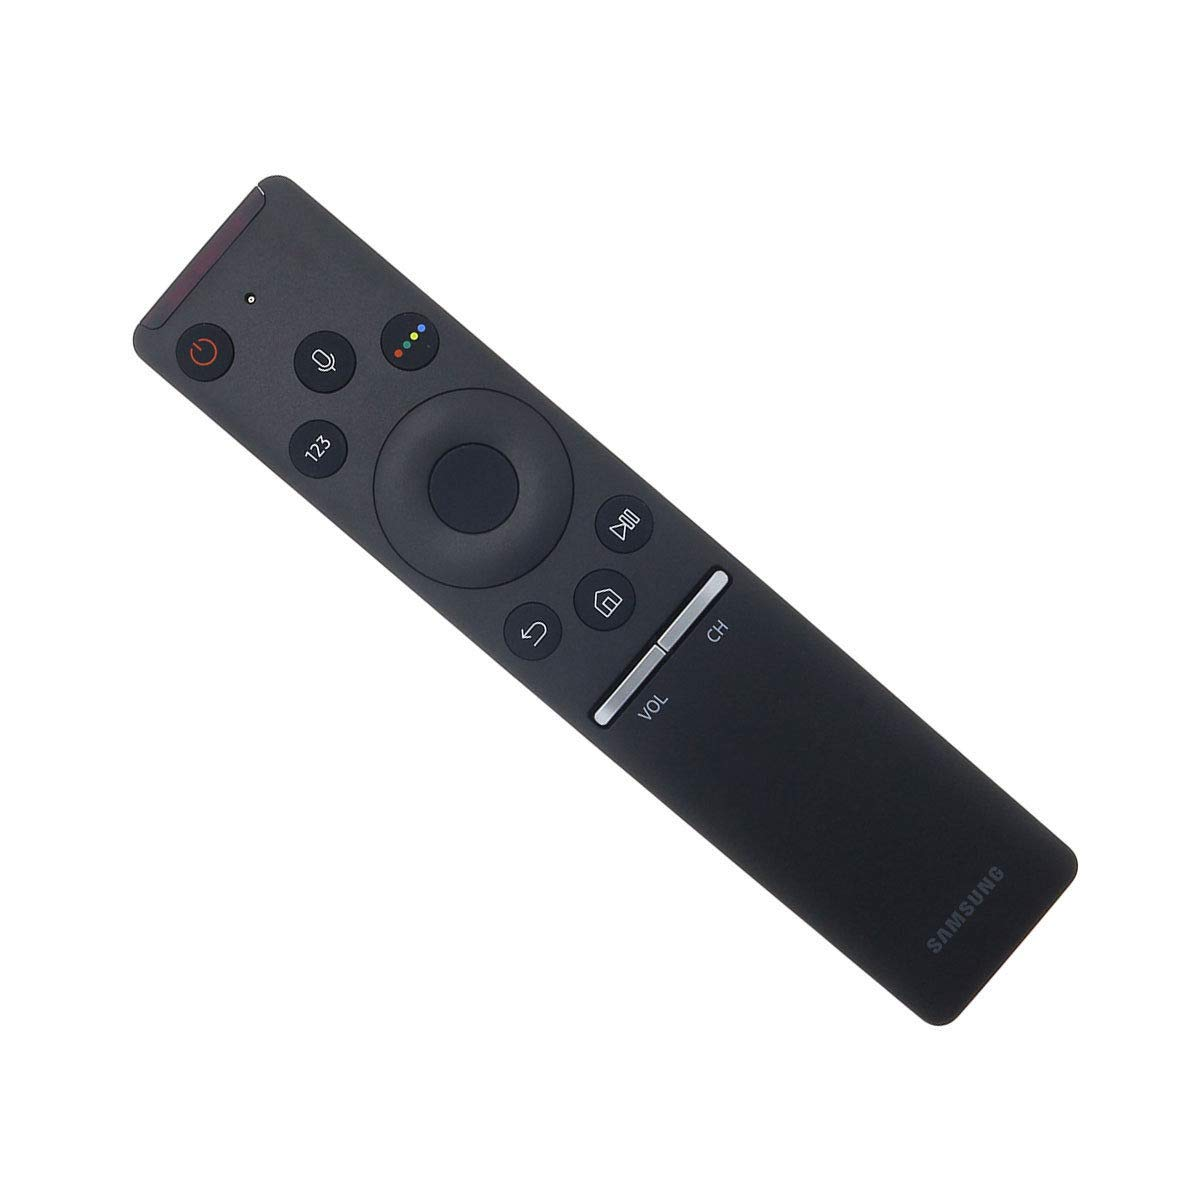 Replacement Remote Control Controller for Samsung Q6FN, Q7FN, Q8FN, Q75CNF, Q65CNF HD Smart QLED TV